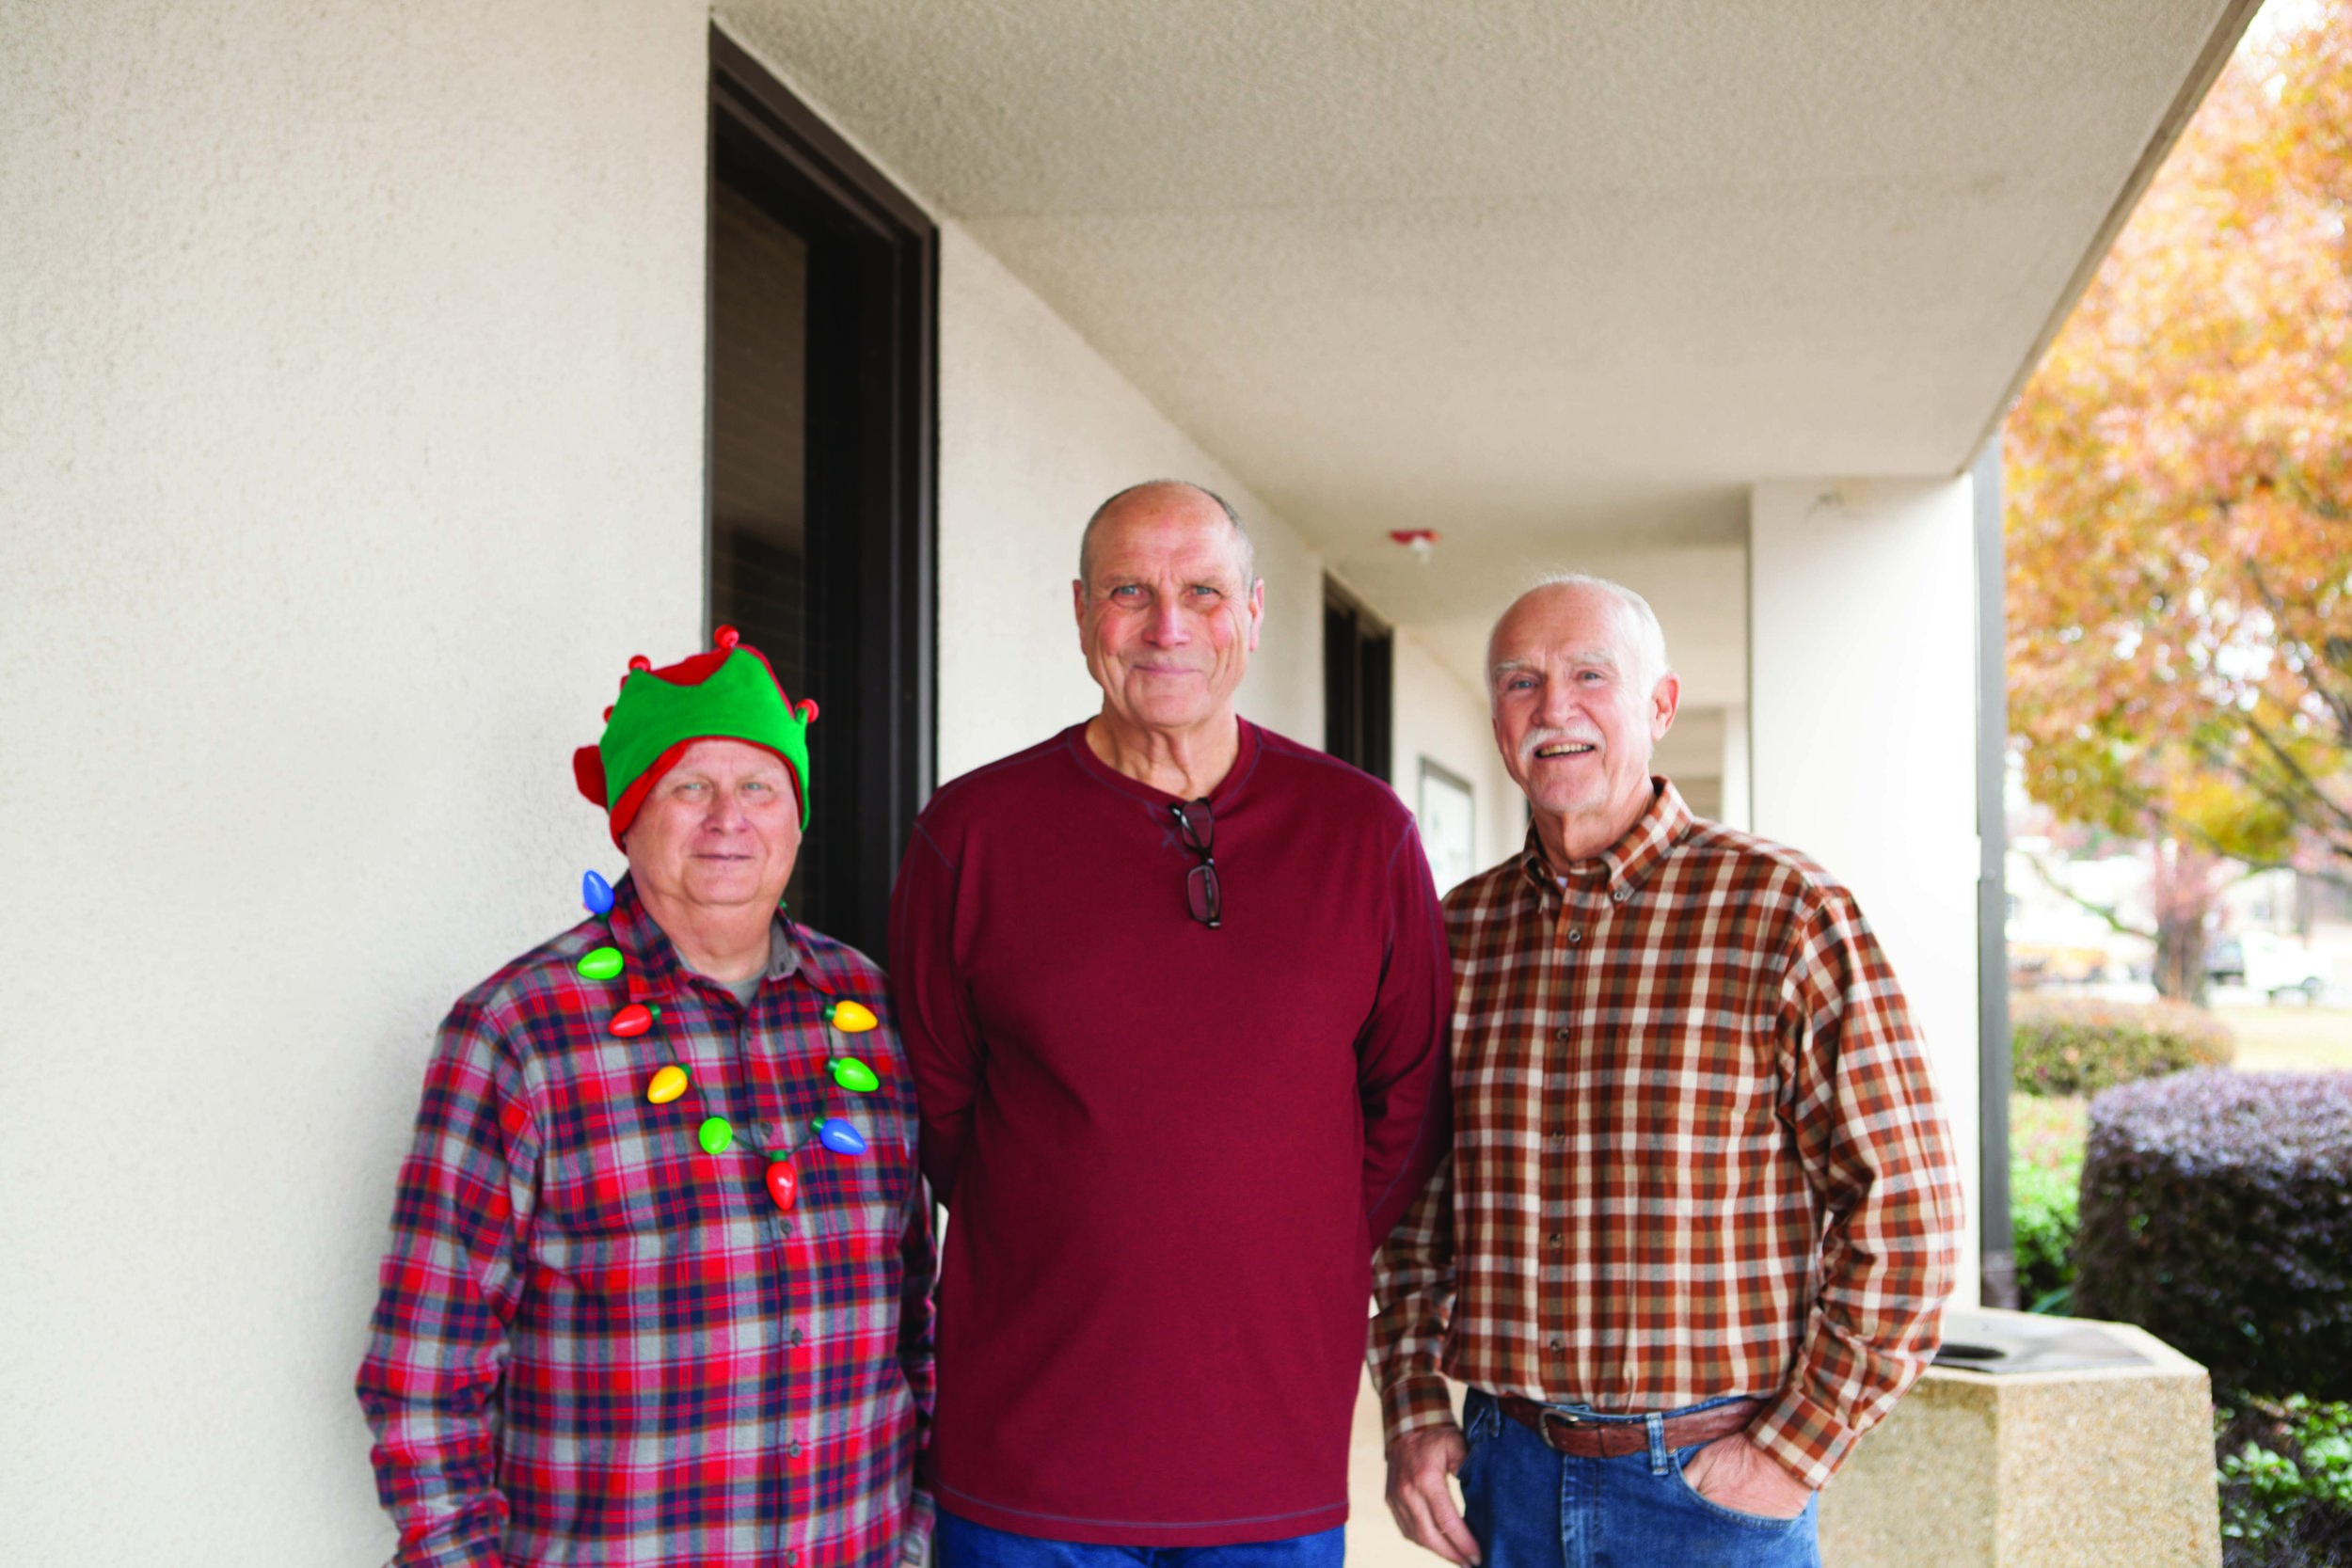 Larry Kuykendall, Fred Bristow and Olen Adams